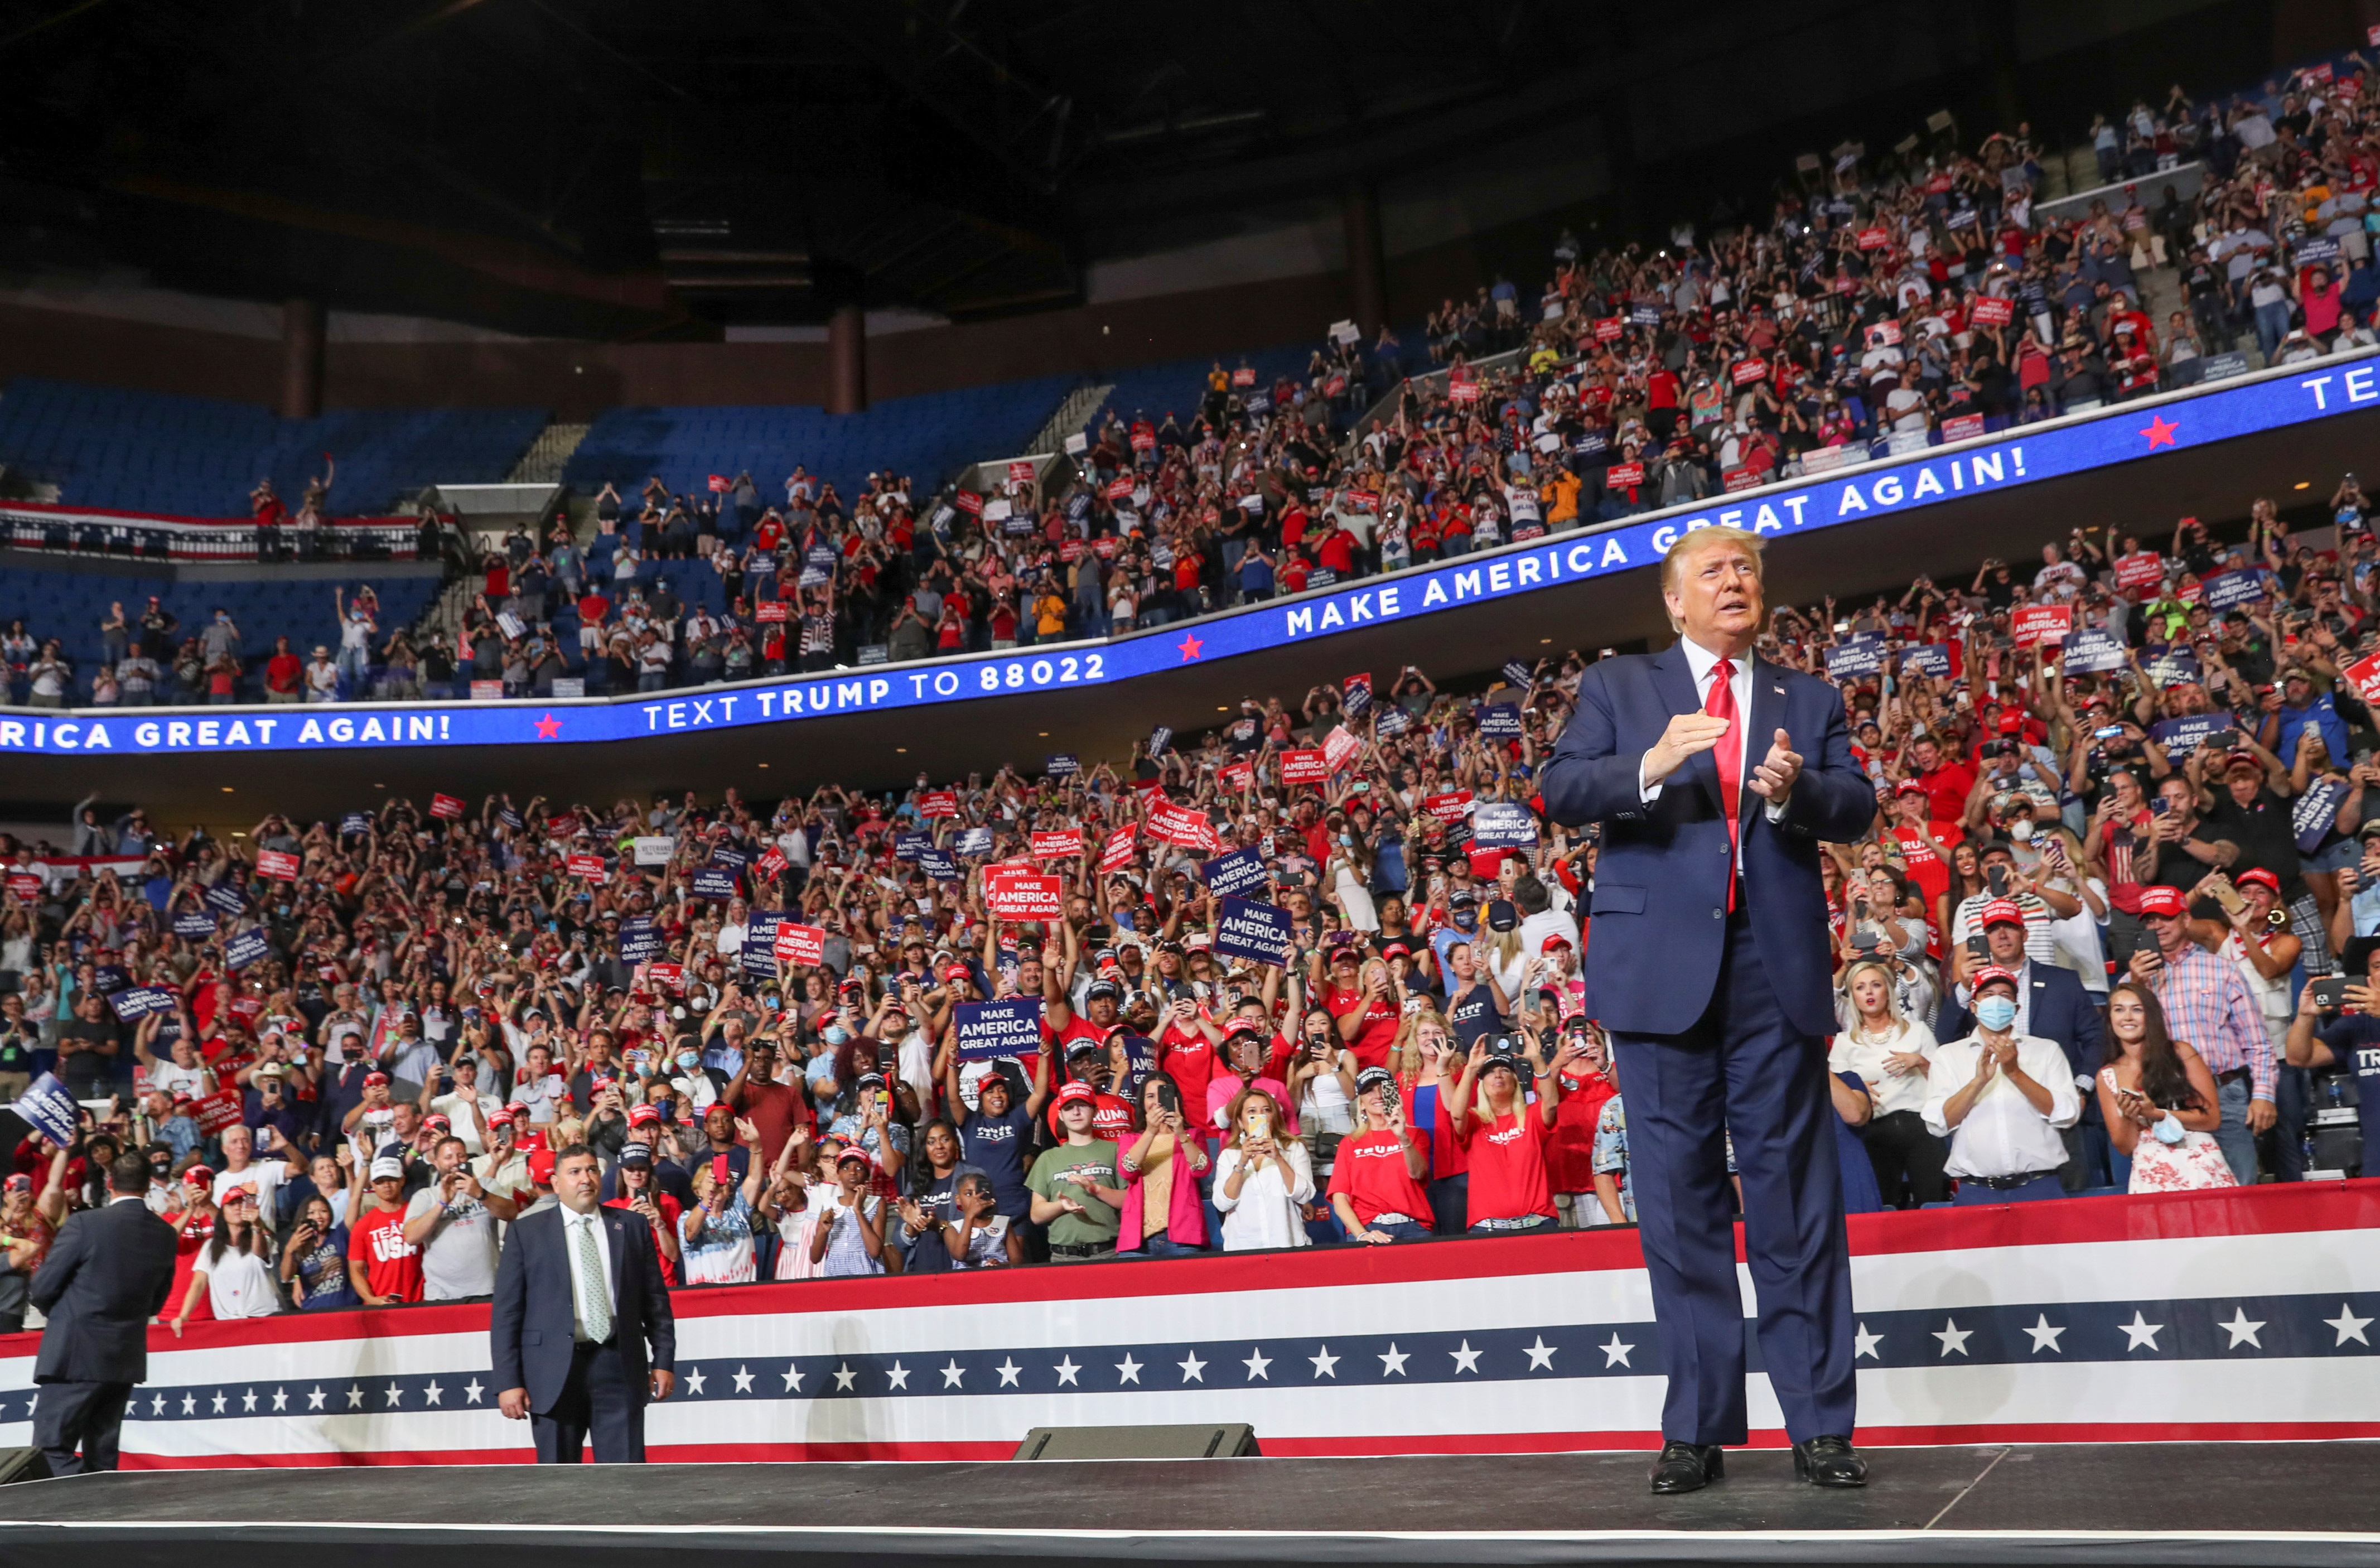 President Trump Seeks 2nd Term, After Overcoming Impeachment